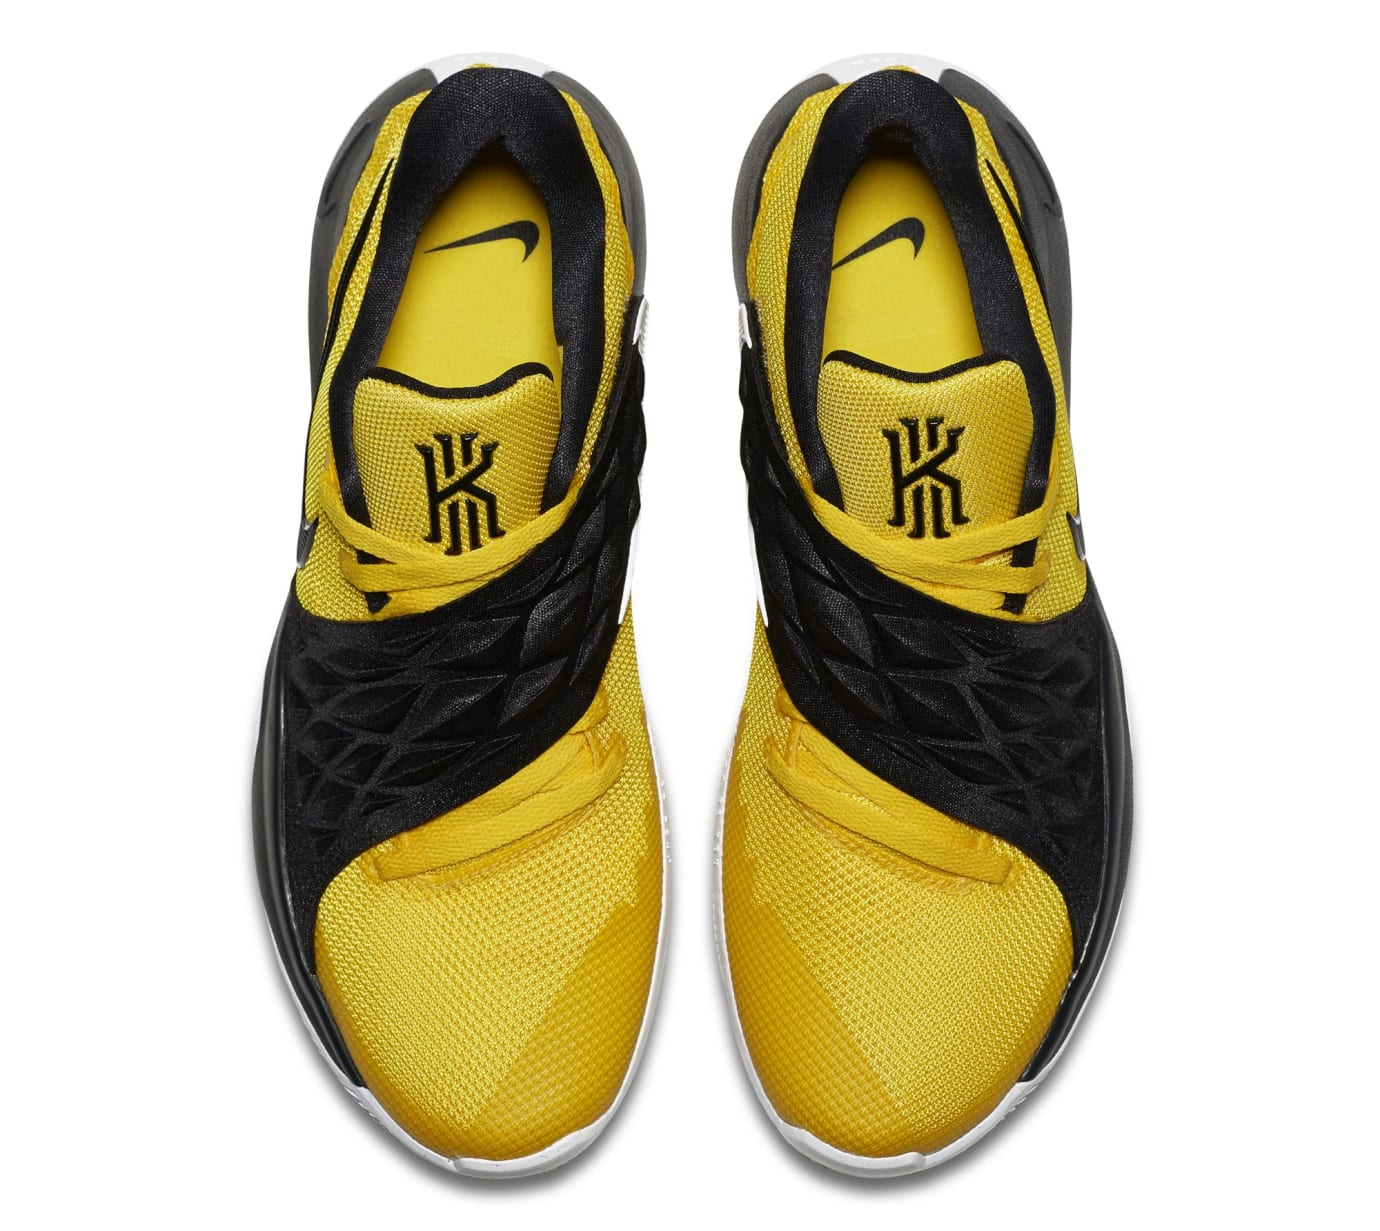 Nike Kyrie Low 'Amarillo/Black' (Top)